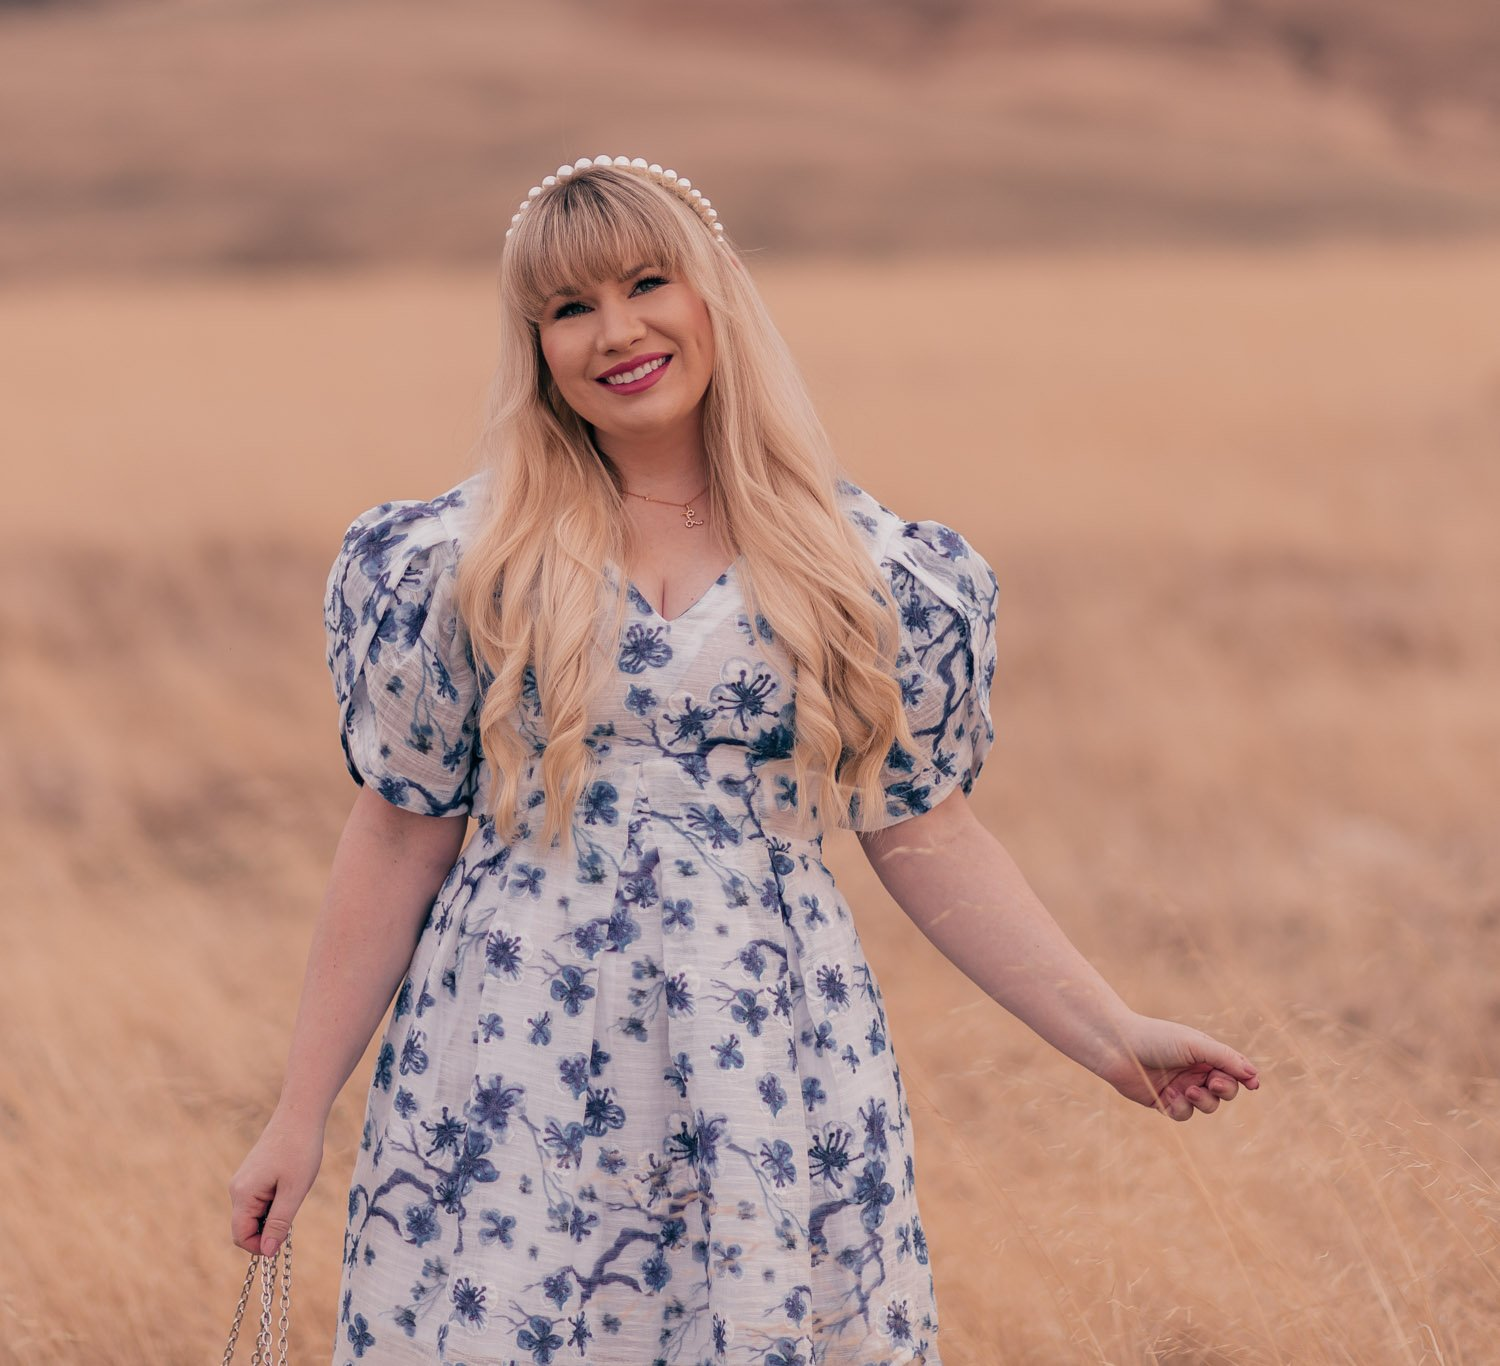 Feminine fashion blogger Elizabeth Hugen of Lizzie in Lace wears a beautiful white and blue floral dress with a Lele Sadoughi pearl headband for spring and shares an interview with Syra J.